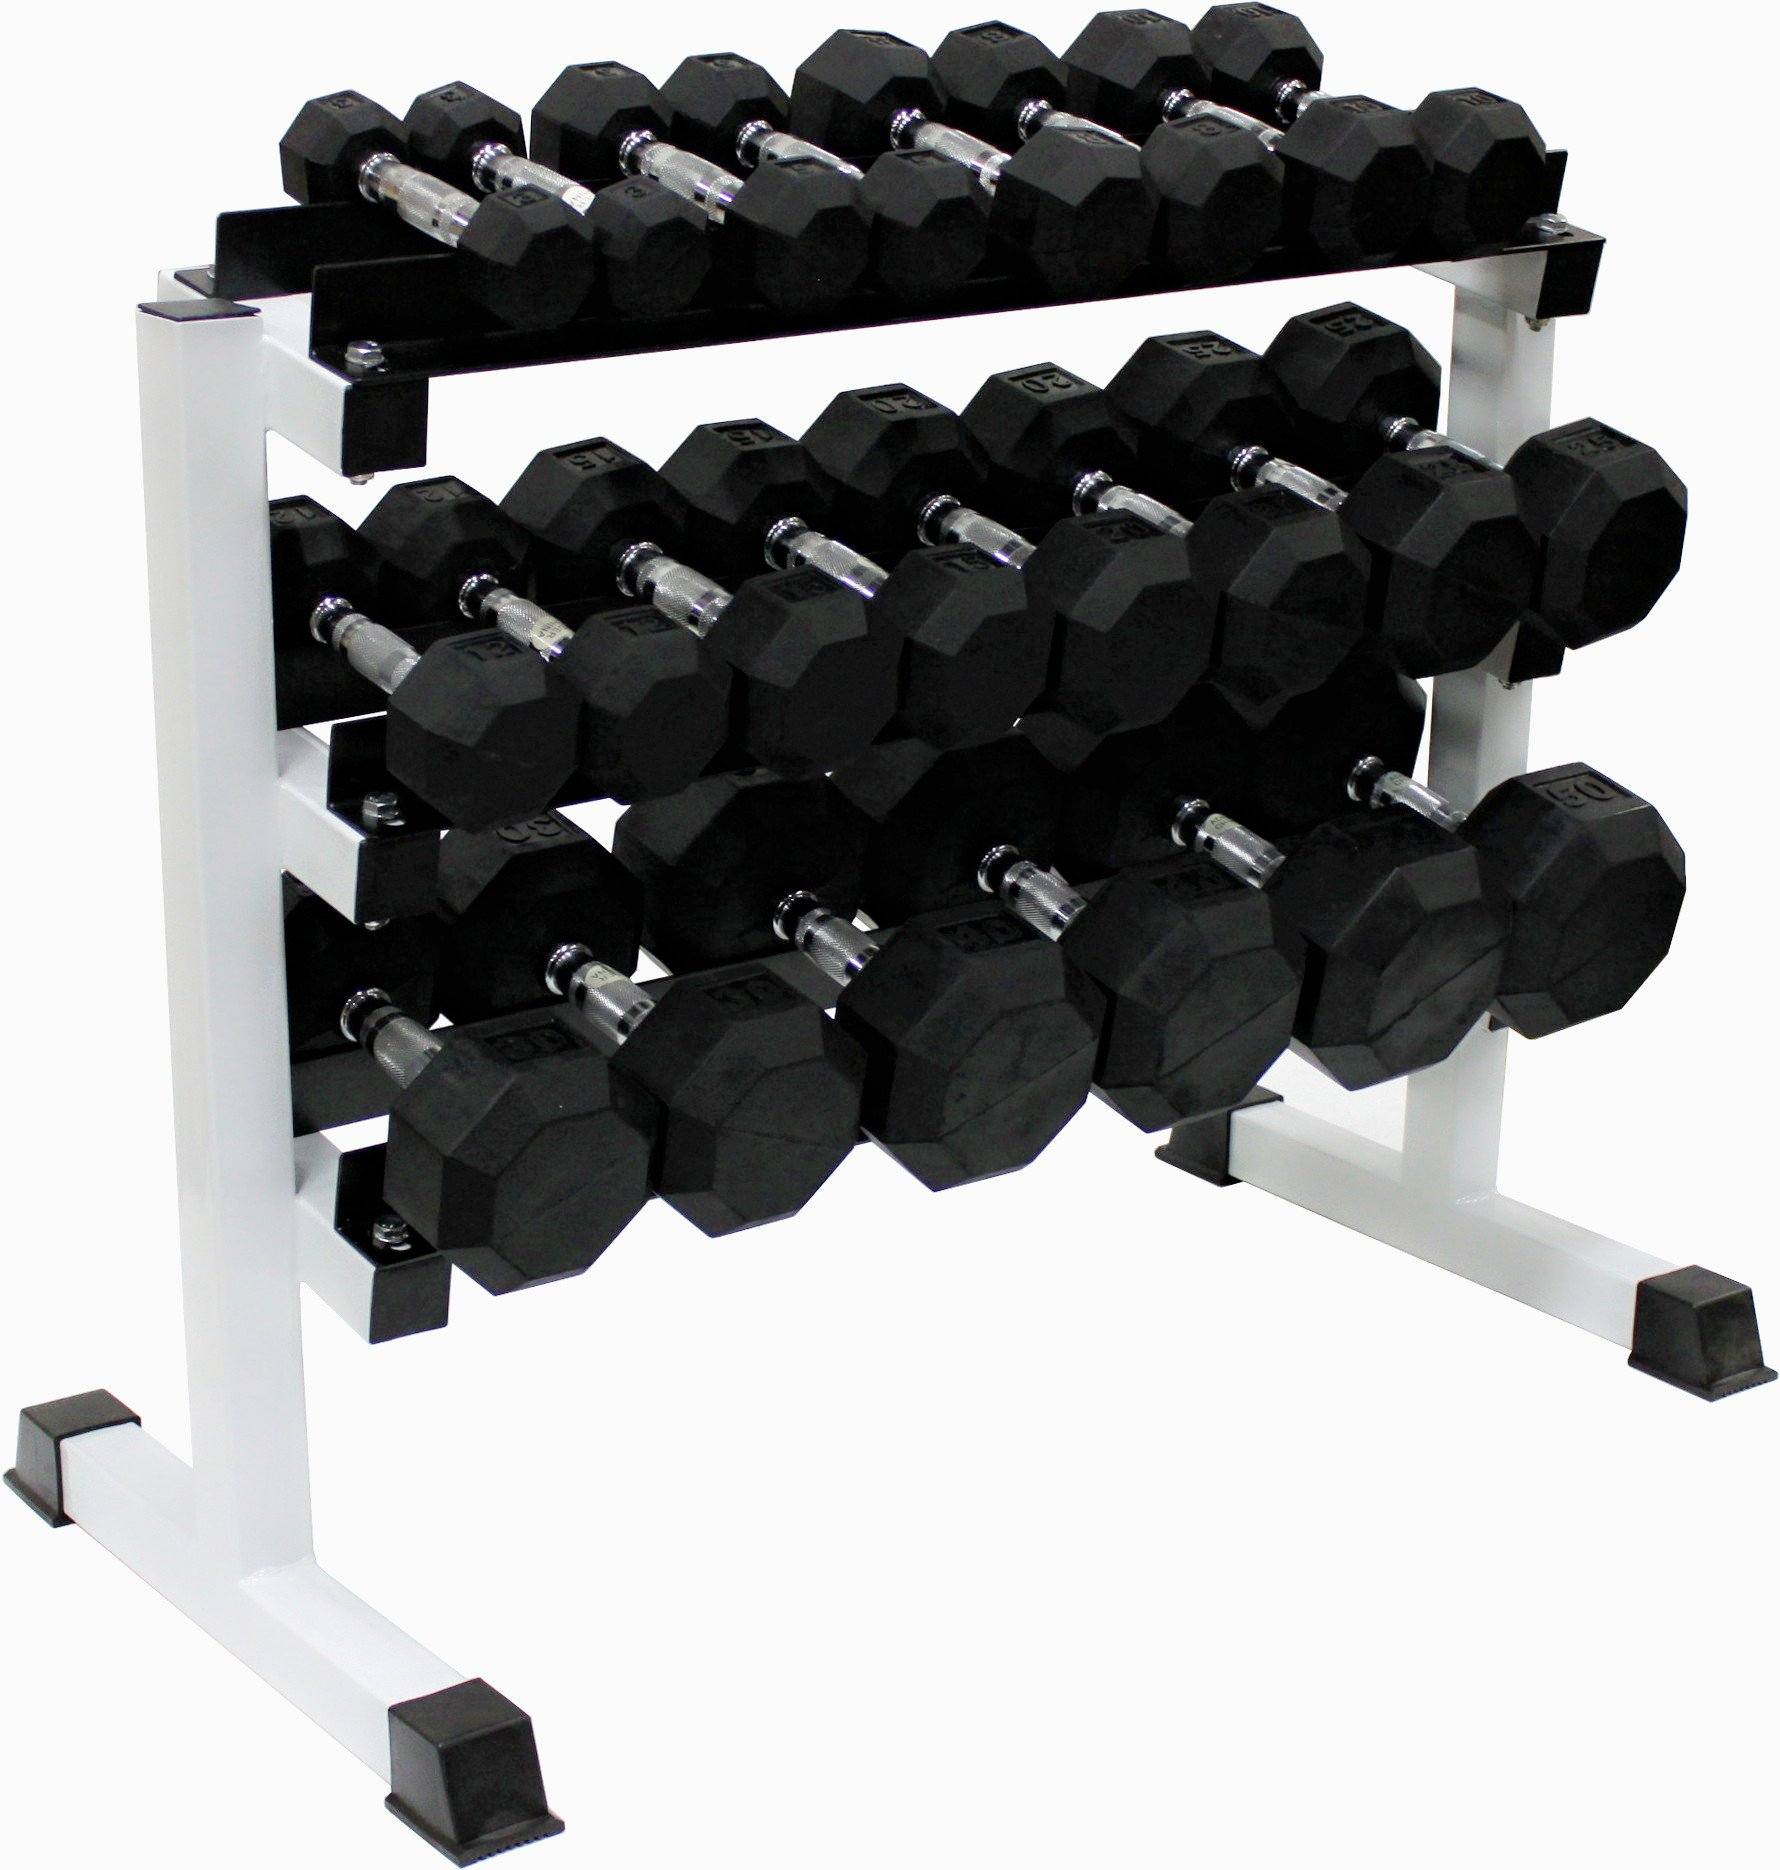 Ader 11Pairs Octagon Rubber Dumbbell 2-50lb with 3 Tier 36'' Dumbbell Rack and 4' Rubber Mat by Ader